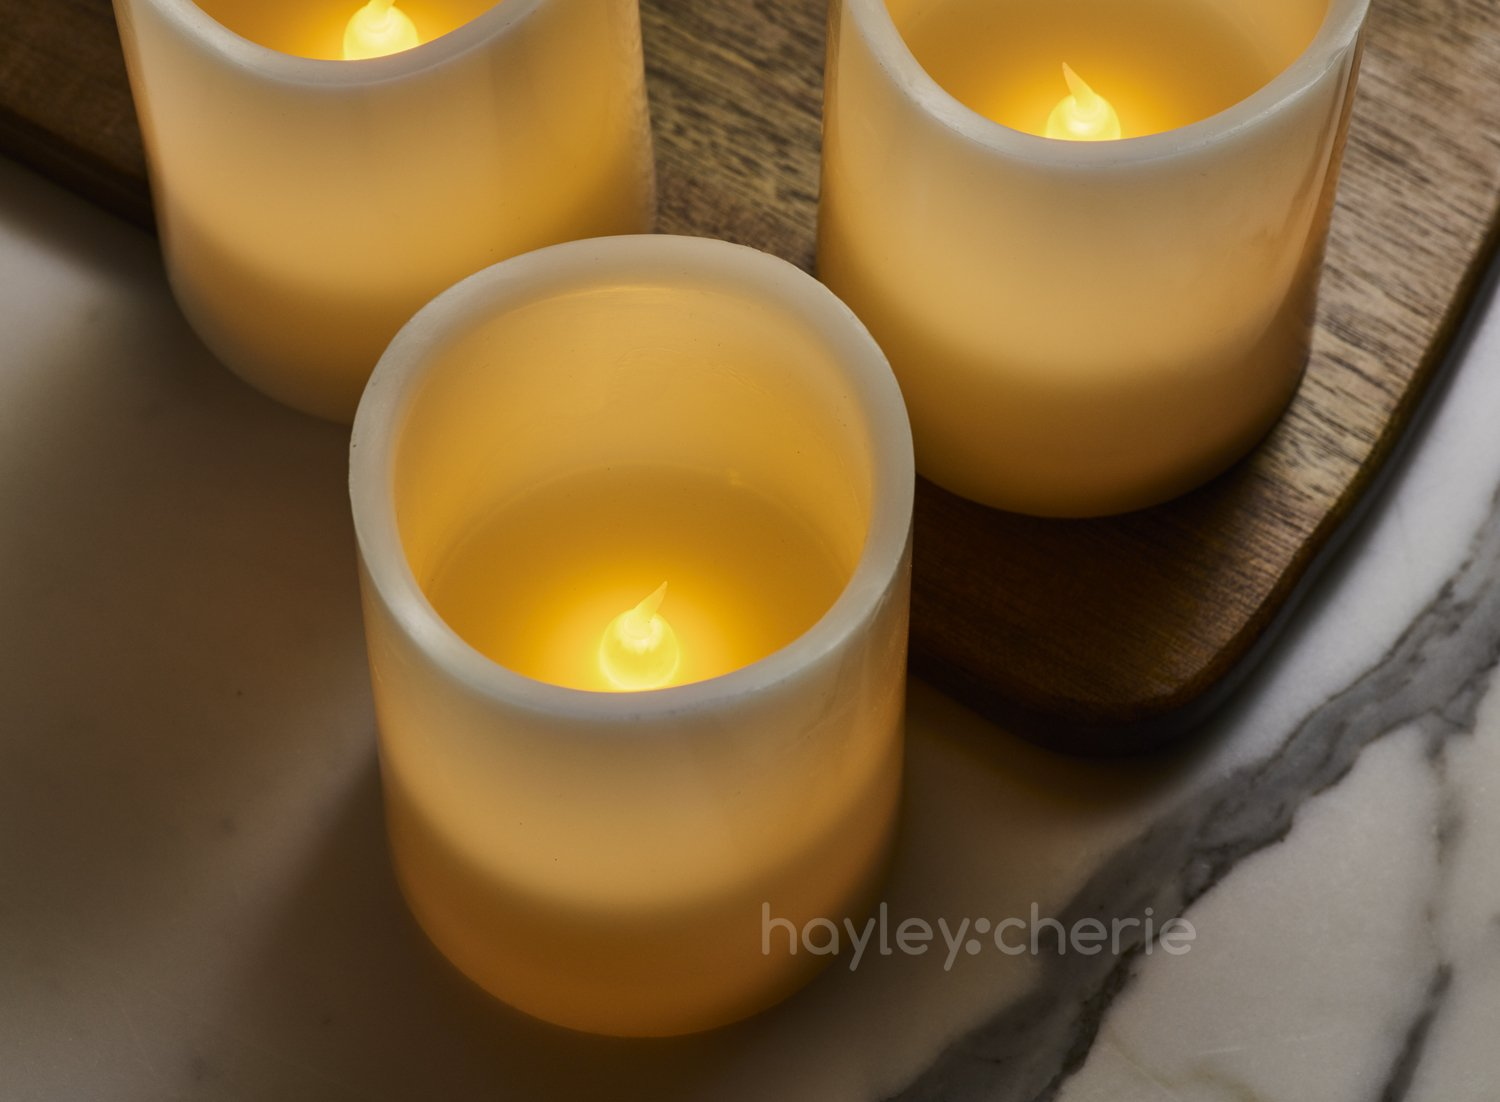 "Hayley Cherie - Real Wax Flameless Candles with Timer (Set of 6) - Ivory LED Candles 3"" wide x 4"" tall - Flickering Amber Flame - Battery Operated Pillar Candles - Large Unscented by Hayley Cherie (Image #6)"